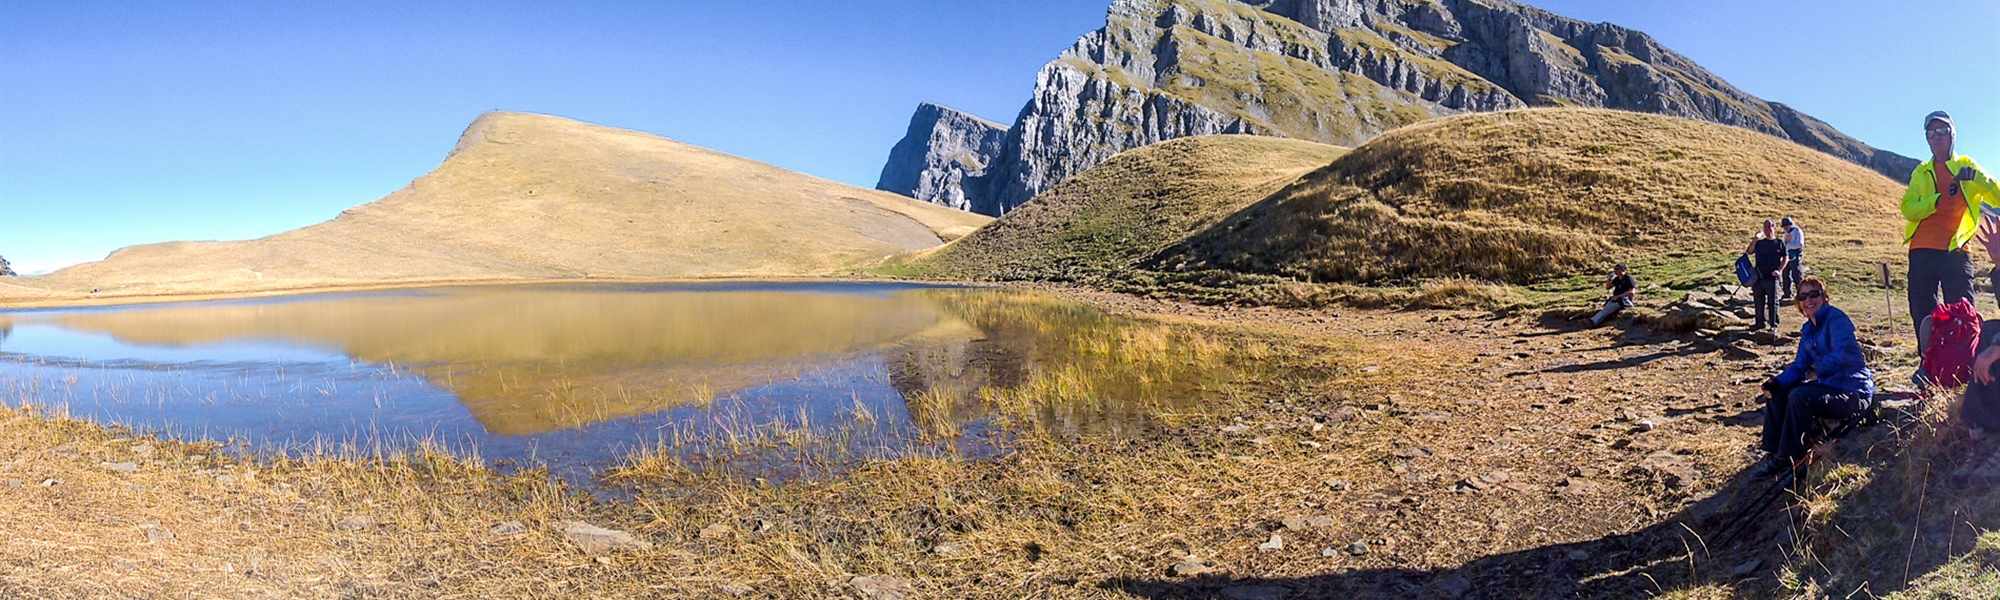 A unique 7-day Trekking tour in Zagori villages, Ioannina, Greece